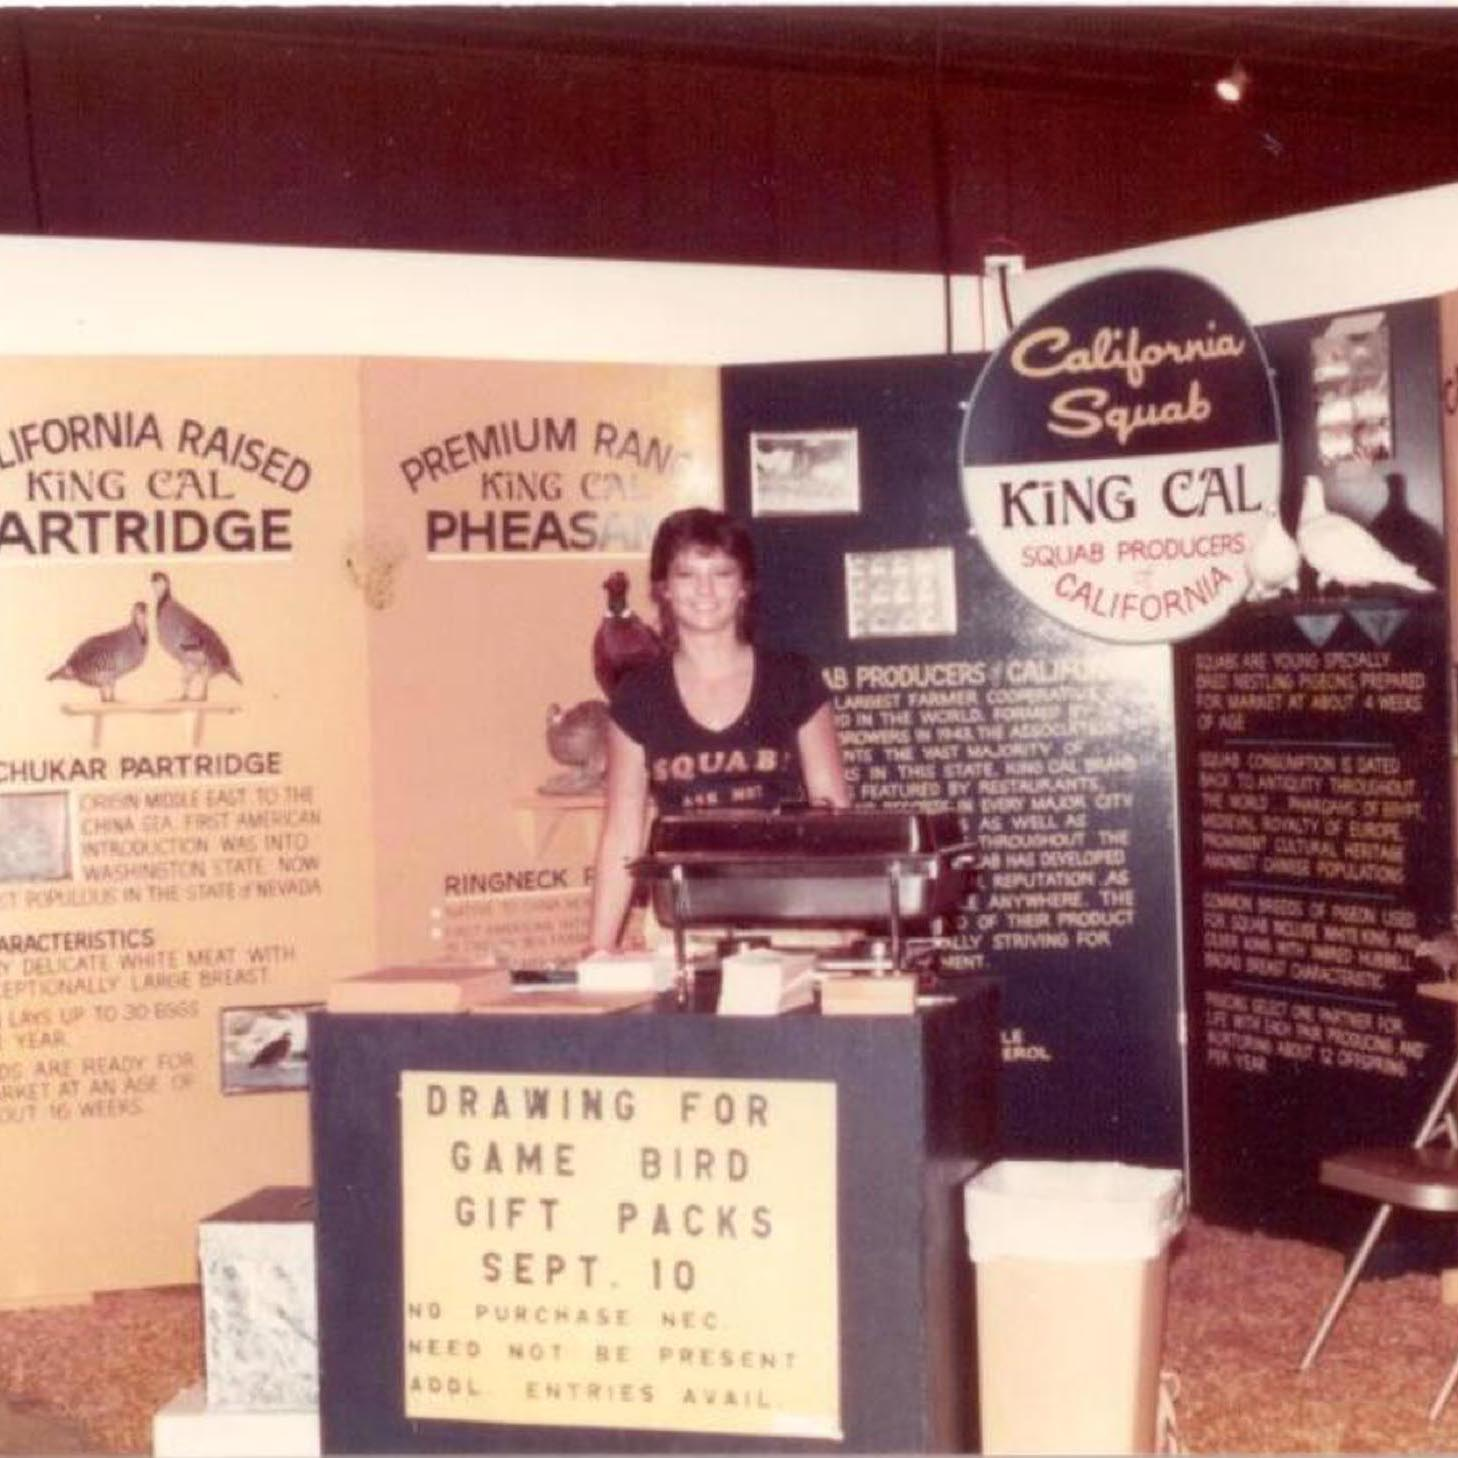 1982. Squab Producer of California at the California State Fair.